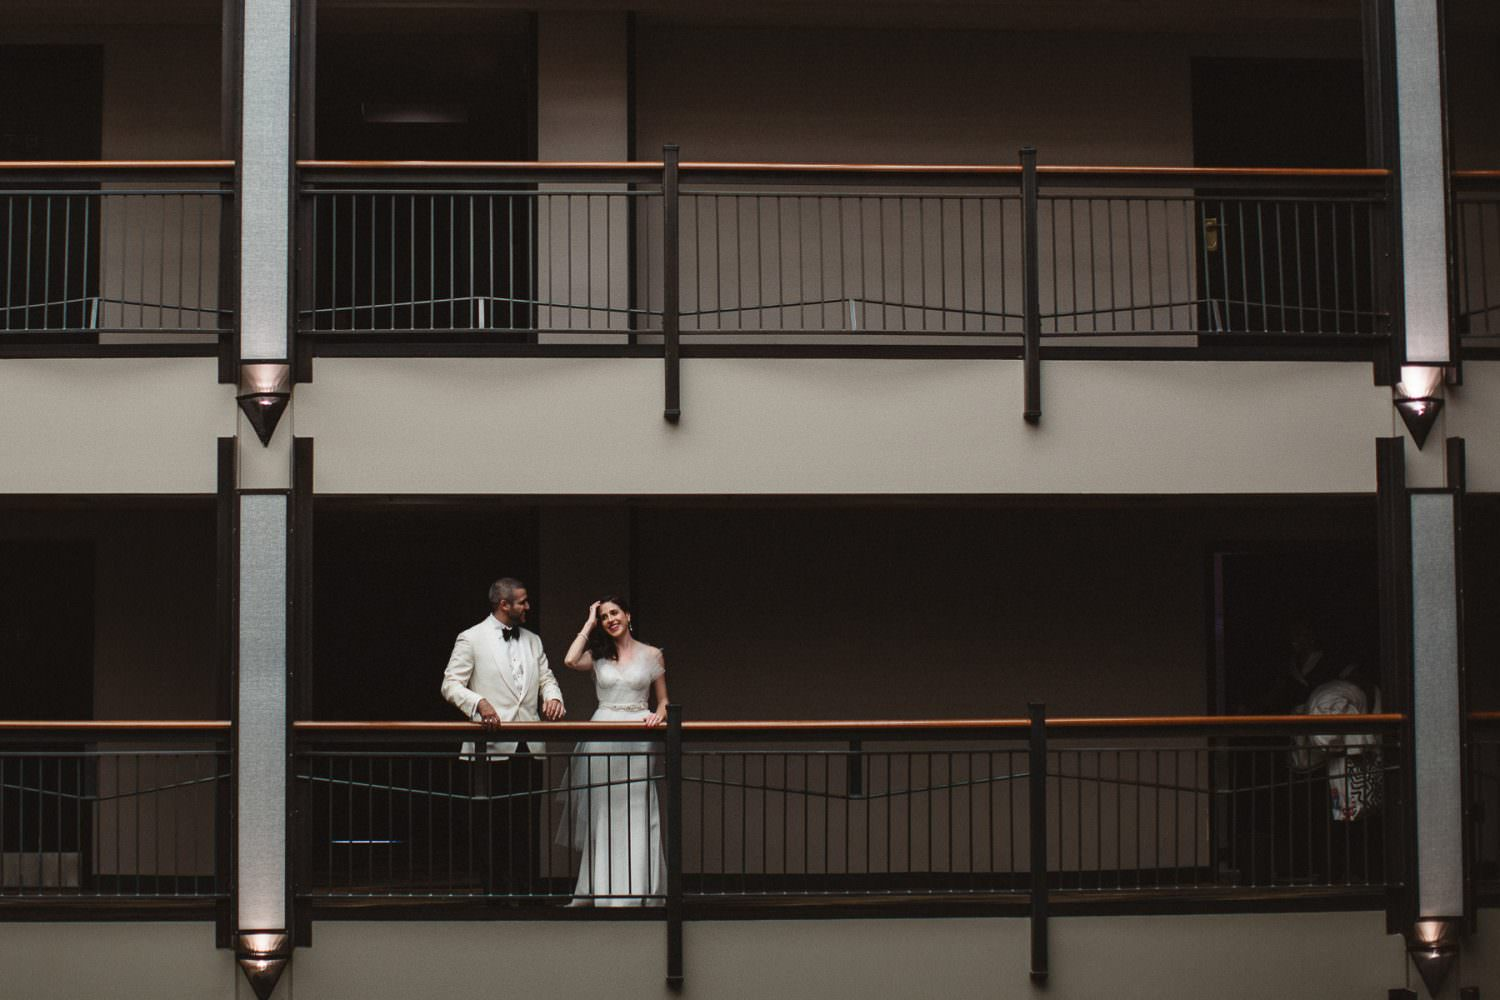 Bride and Groom on the balcony at the Roxy Hotel getting ready to head to their wedding ceremony at Frankies 457 in Brooklyn, NY